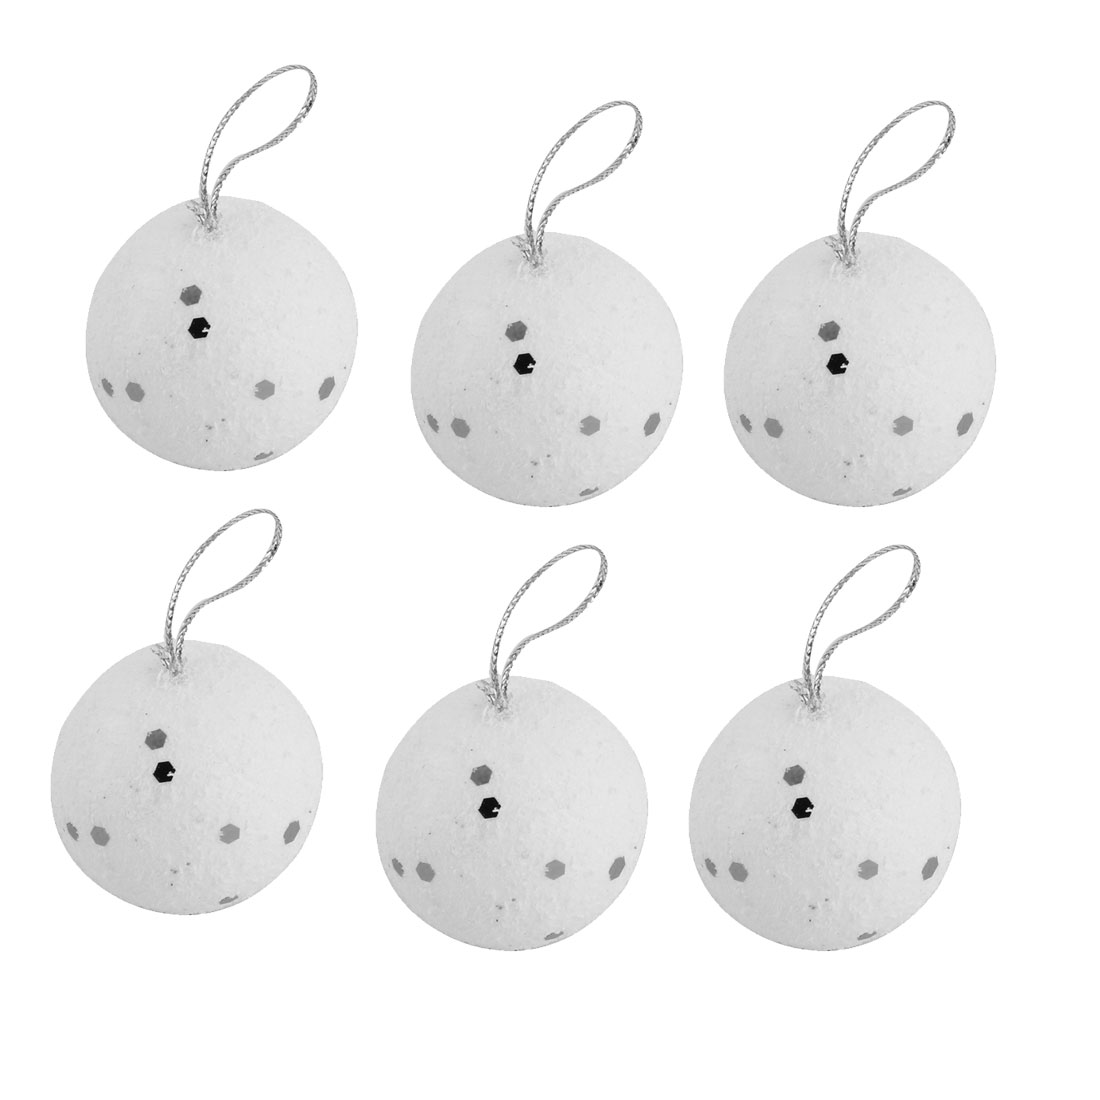 Holiday Christmas Foam Artificial Collectible Decoration Hanging Ball 6 PCS